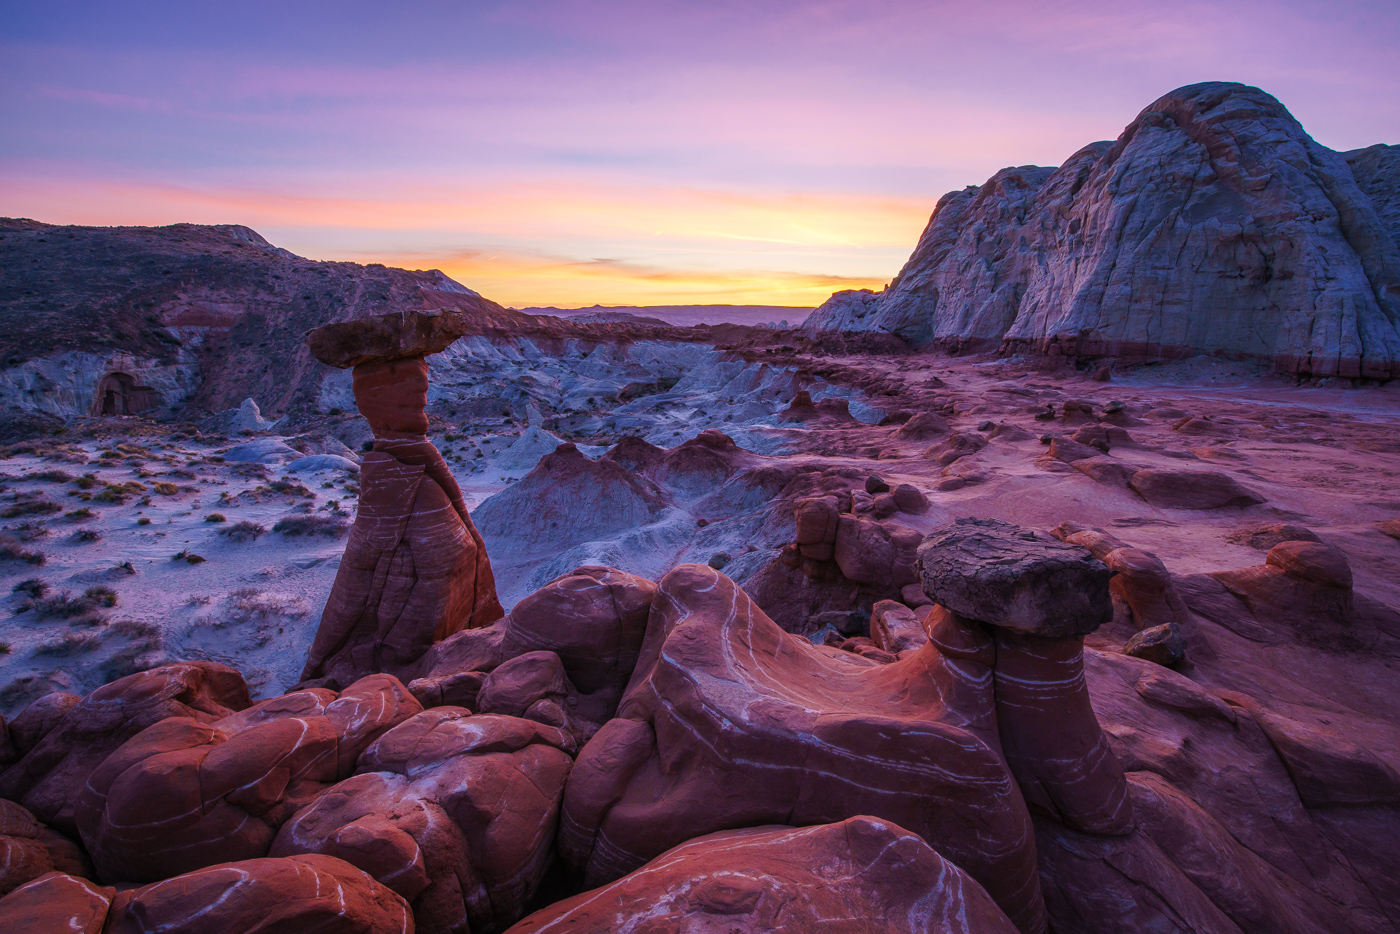 The Toadstools at sunset Ⓒ Paul Nguyen